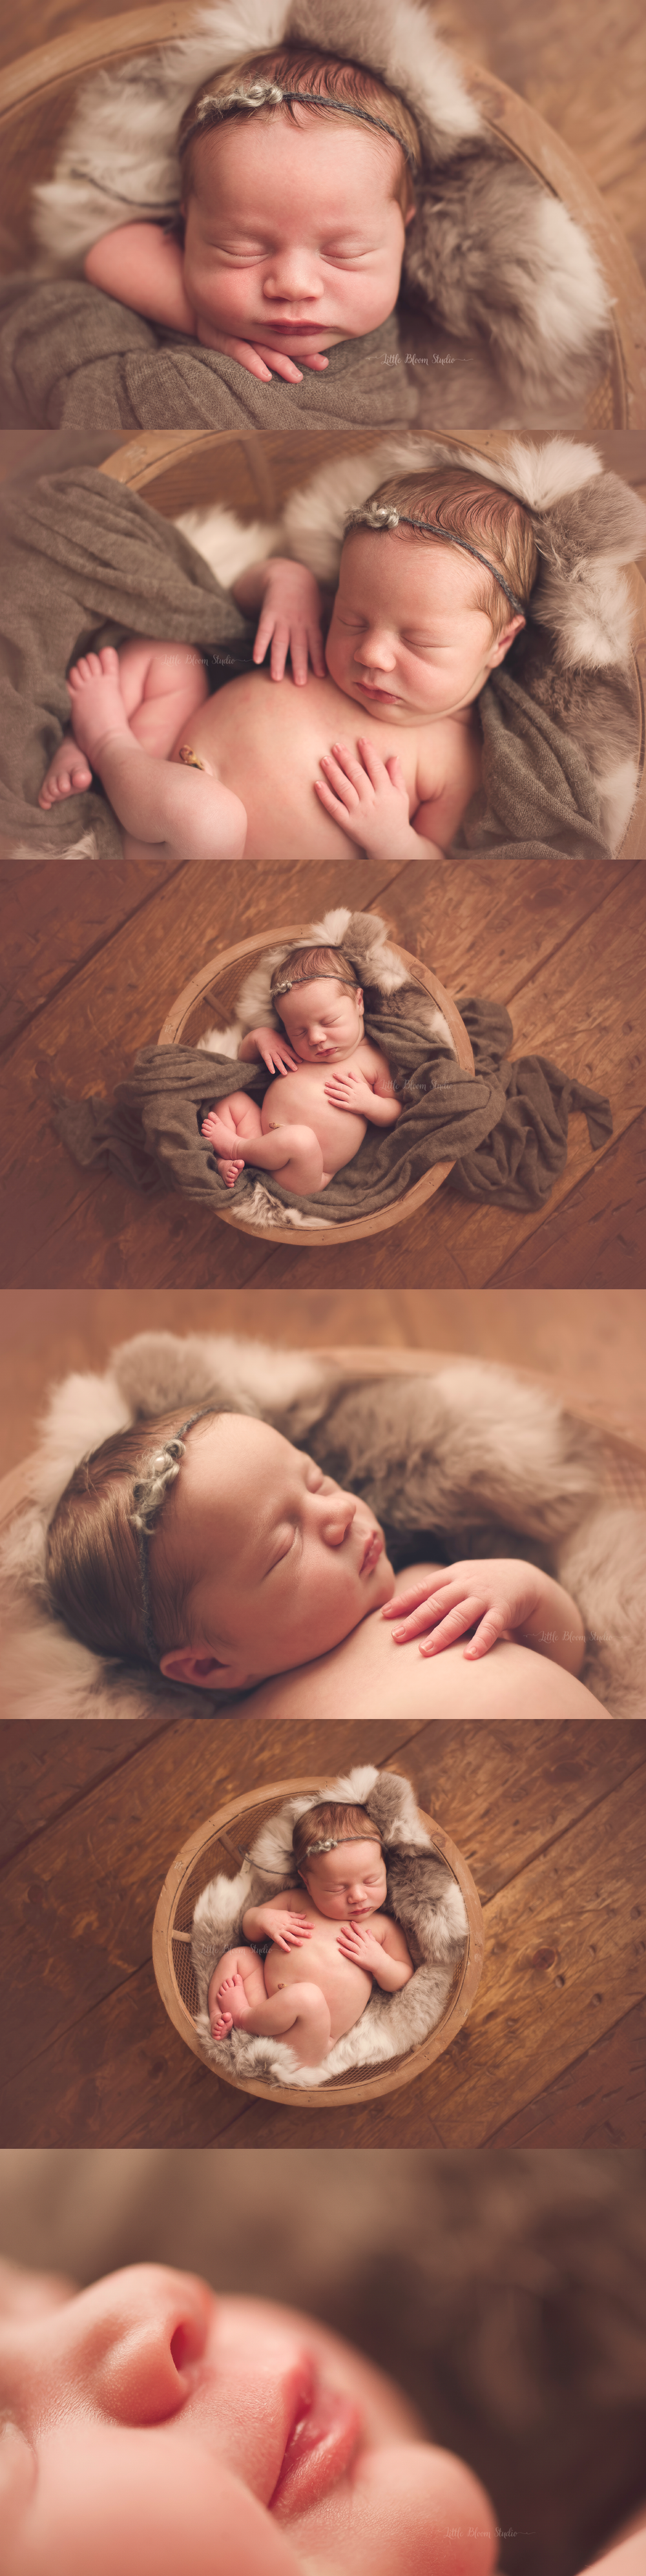 greenville baby photography.jpg